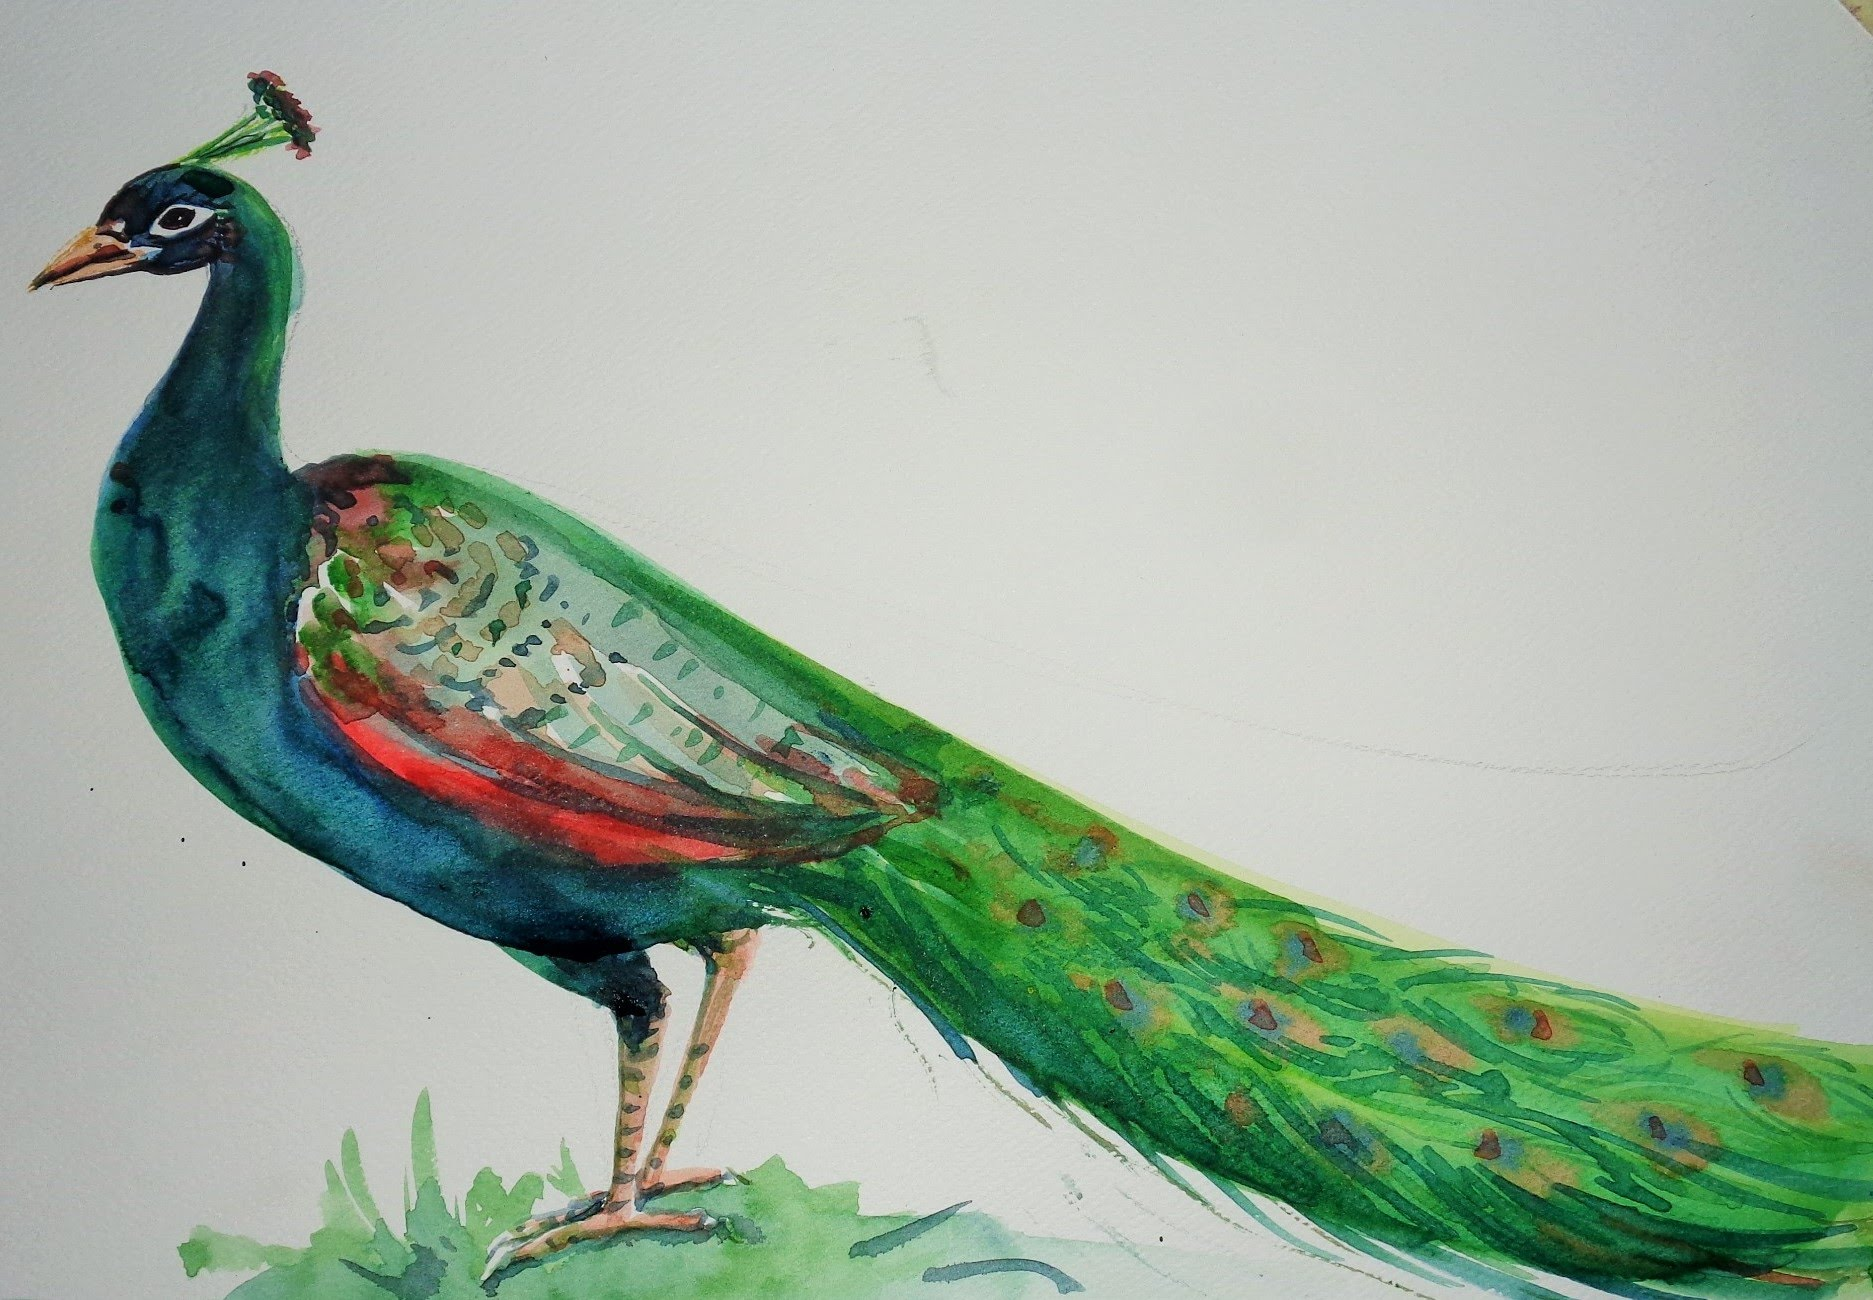 Drawn peacock Kids a By How For